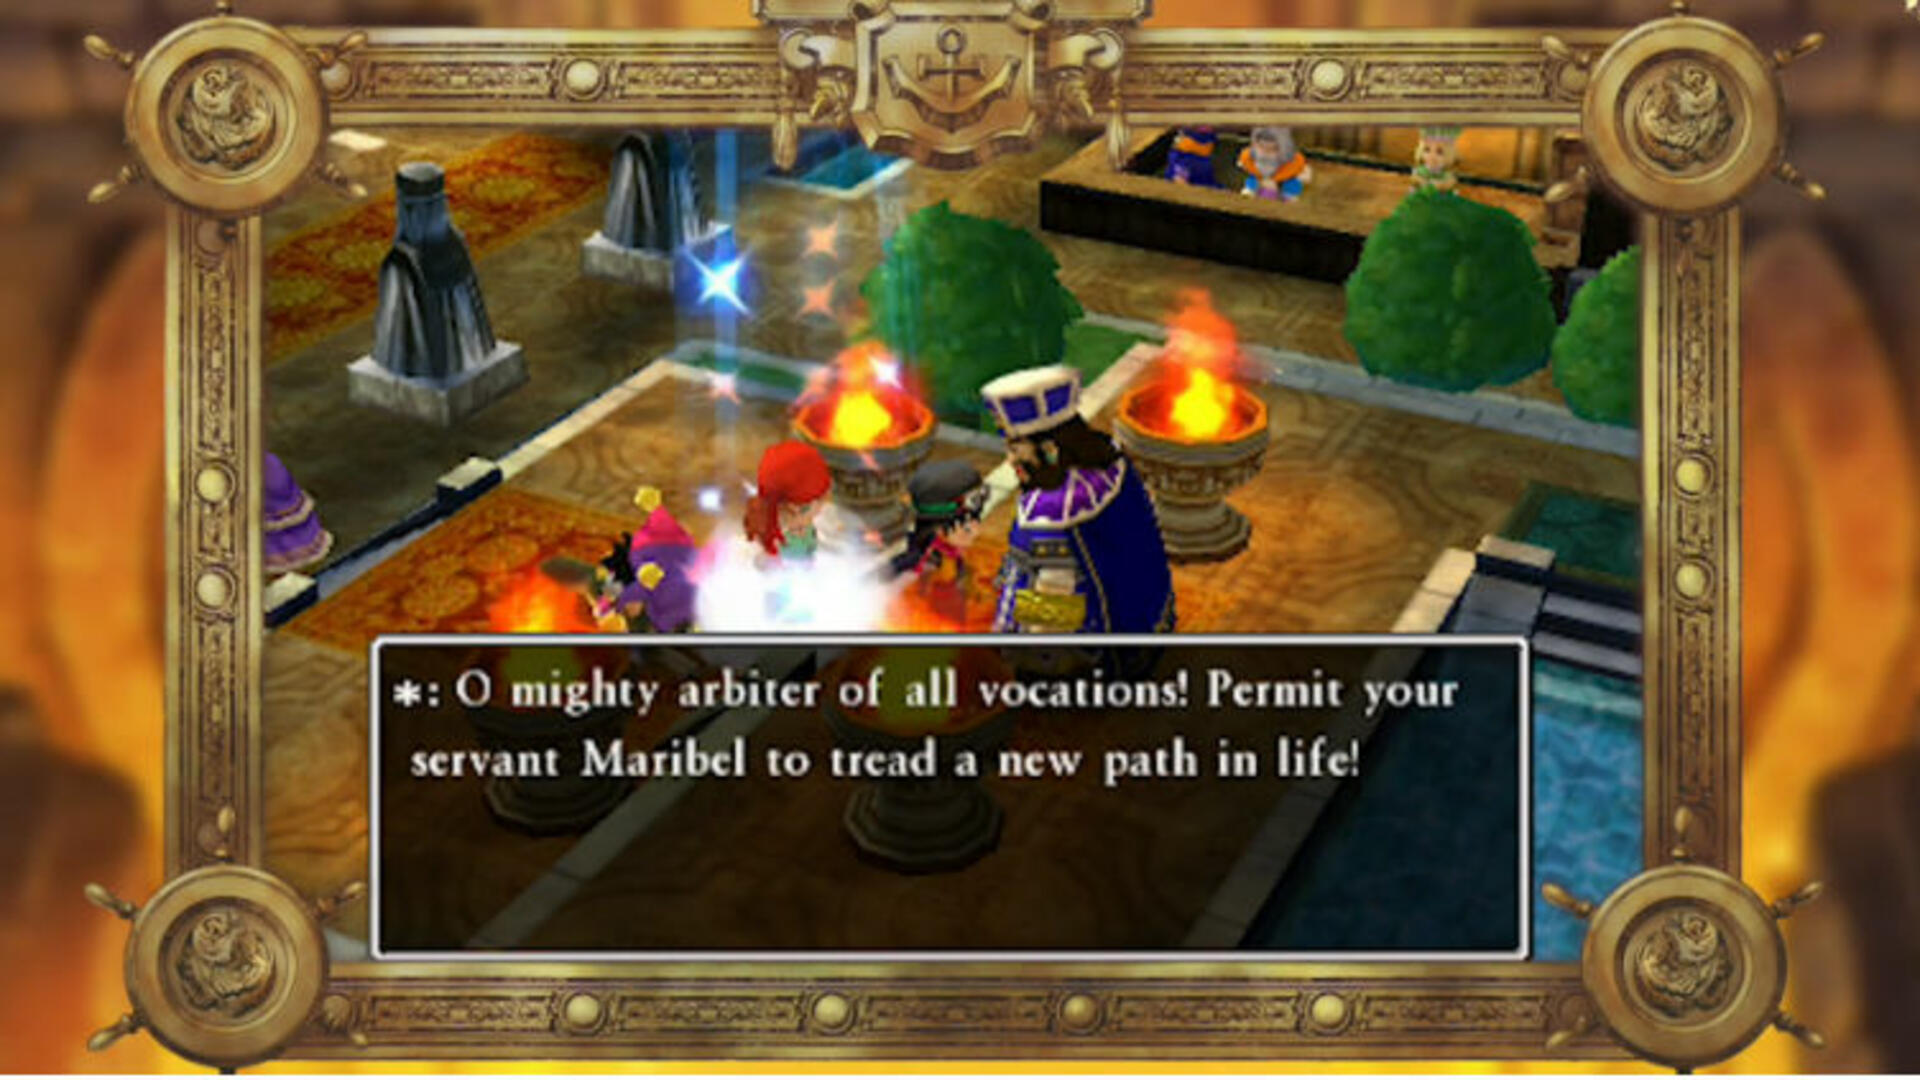 Dragon Quest 7 3DS Paladin Guide: Spells, Abilities, Stats, and More